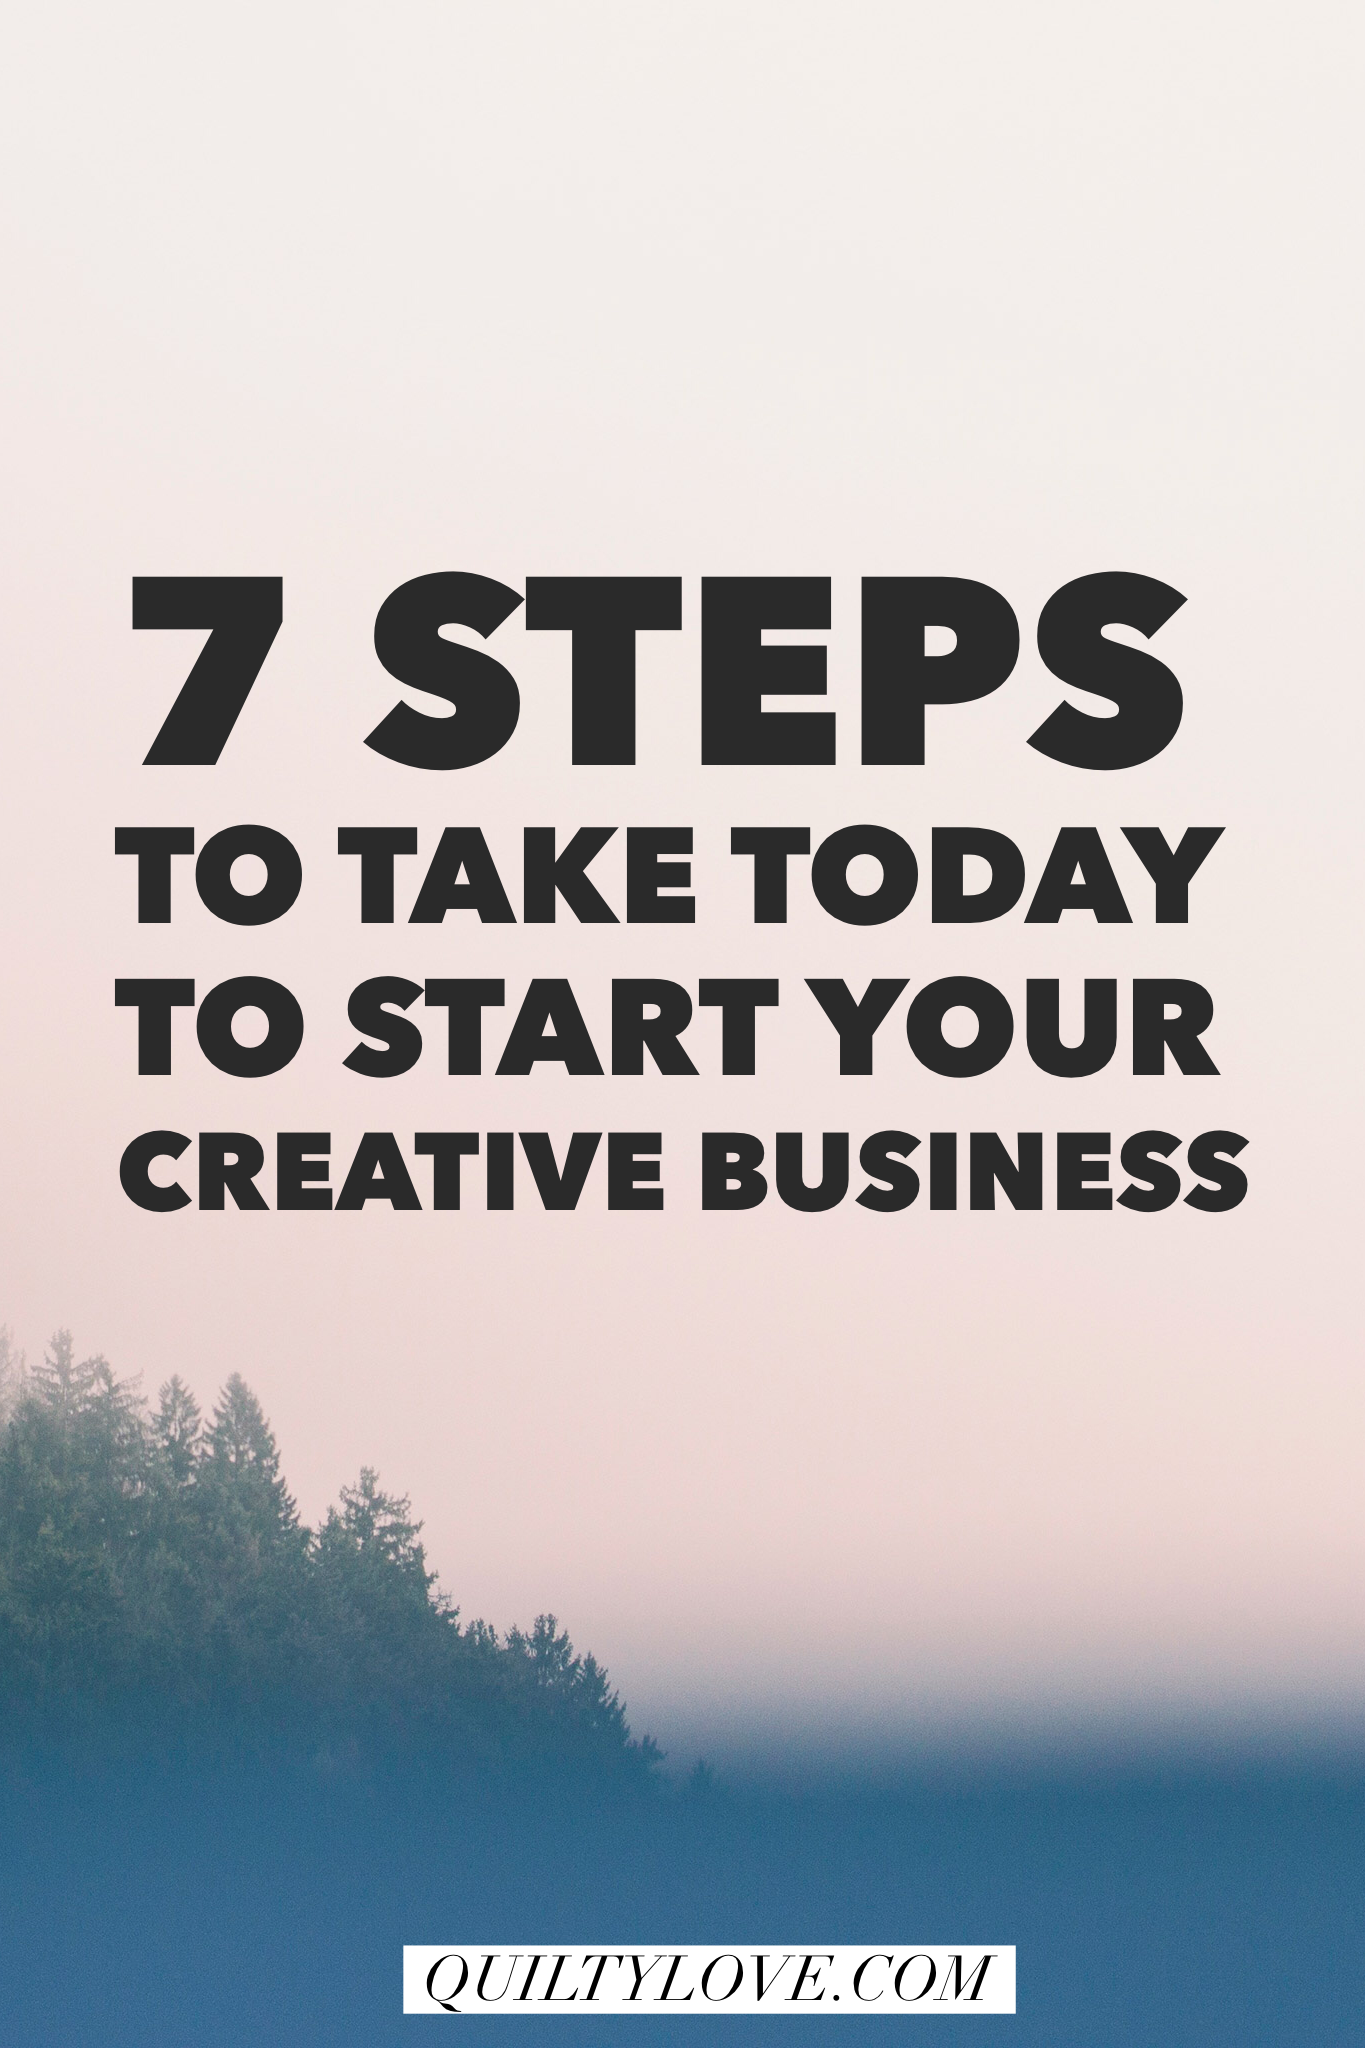 7 steps to take today to start your creative business